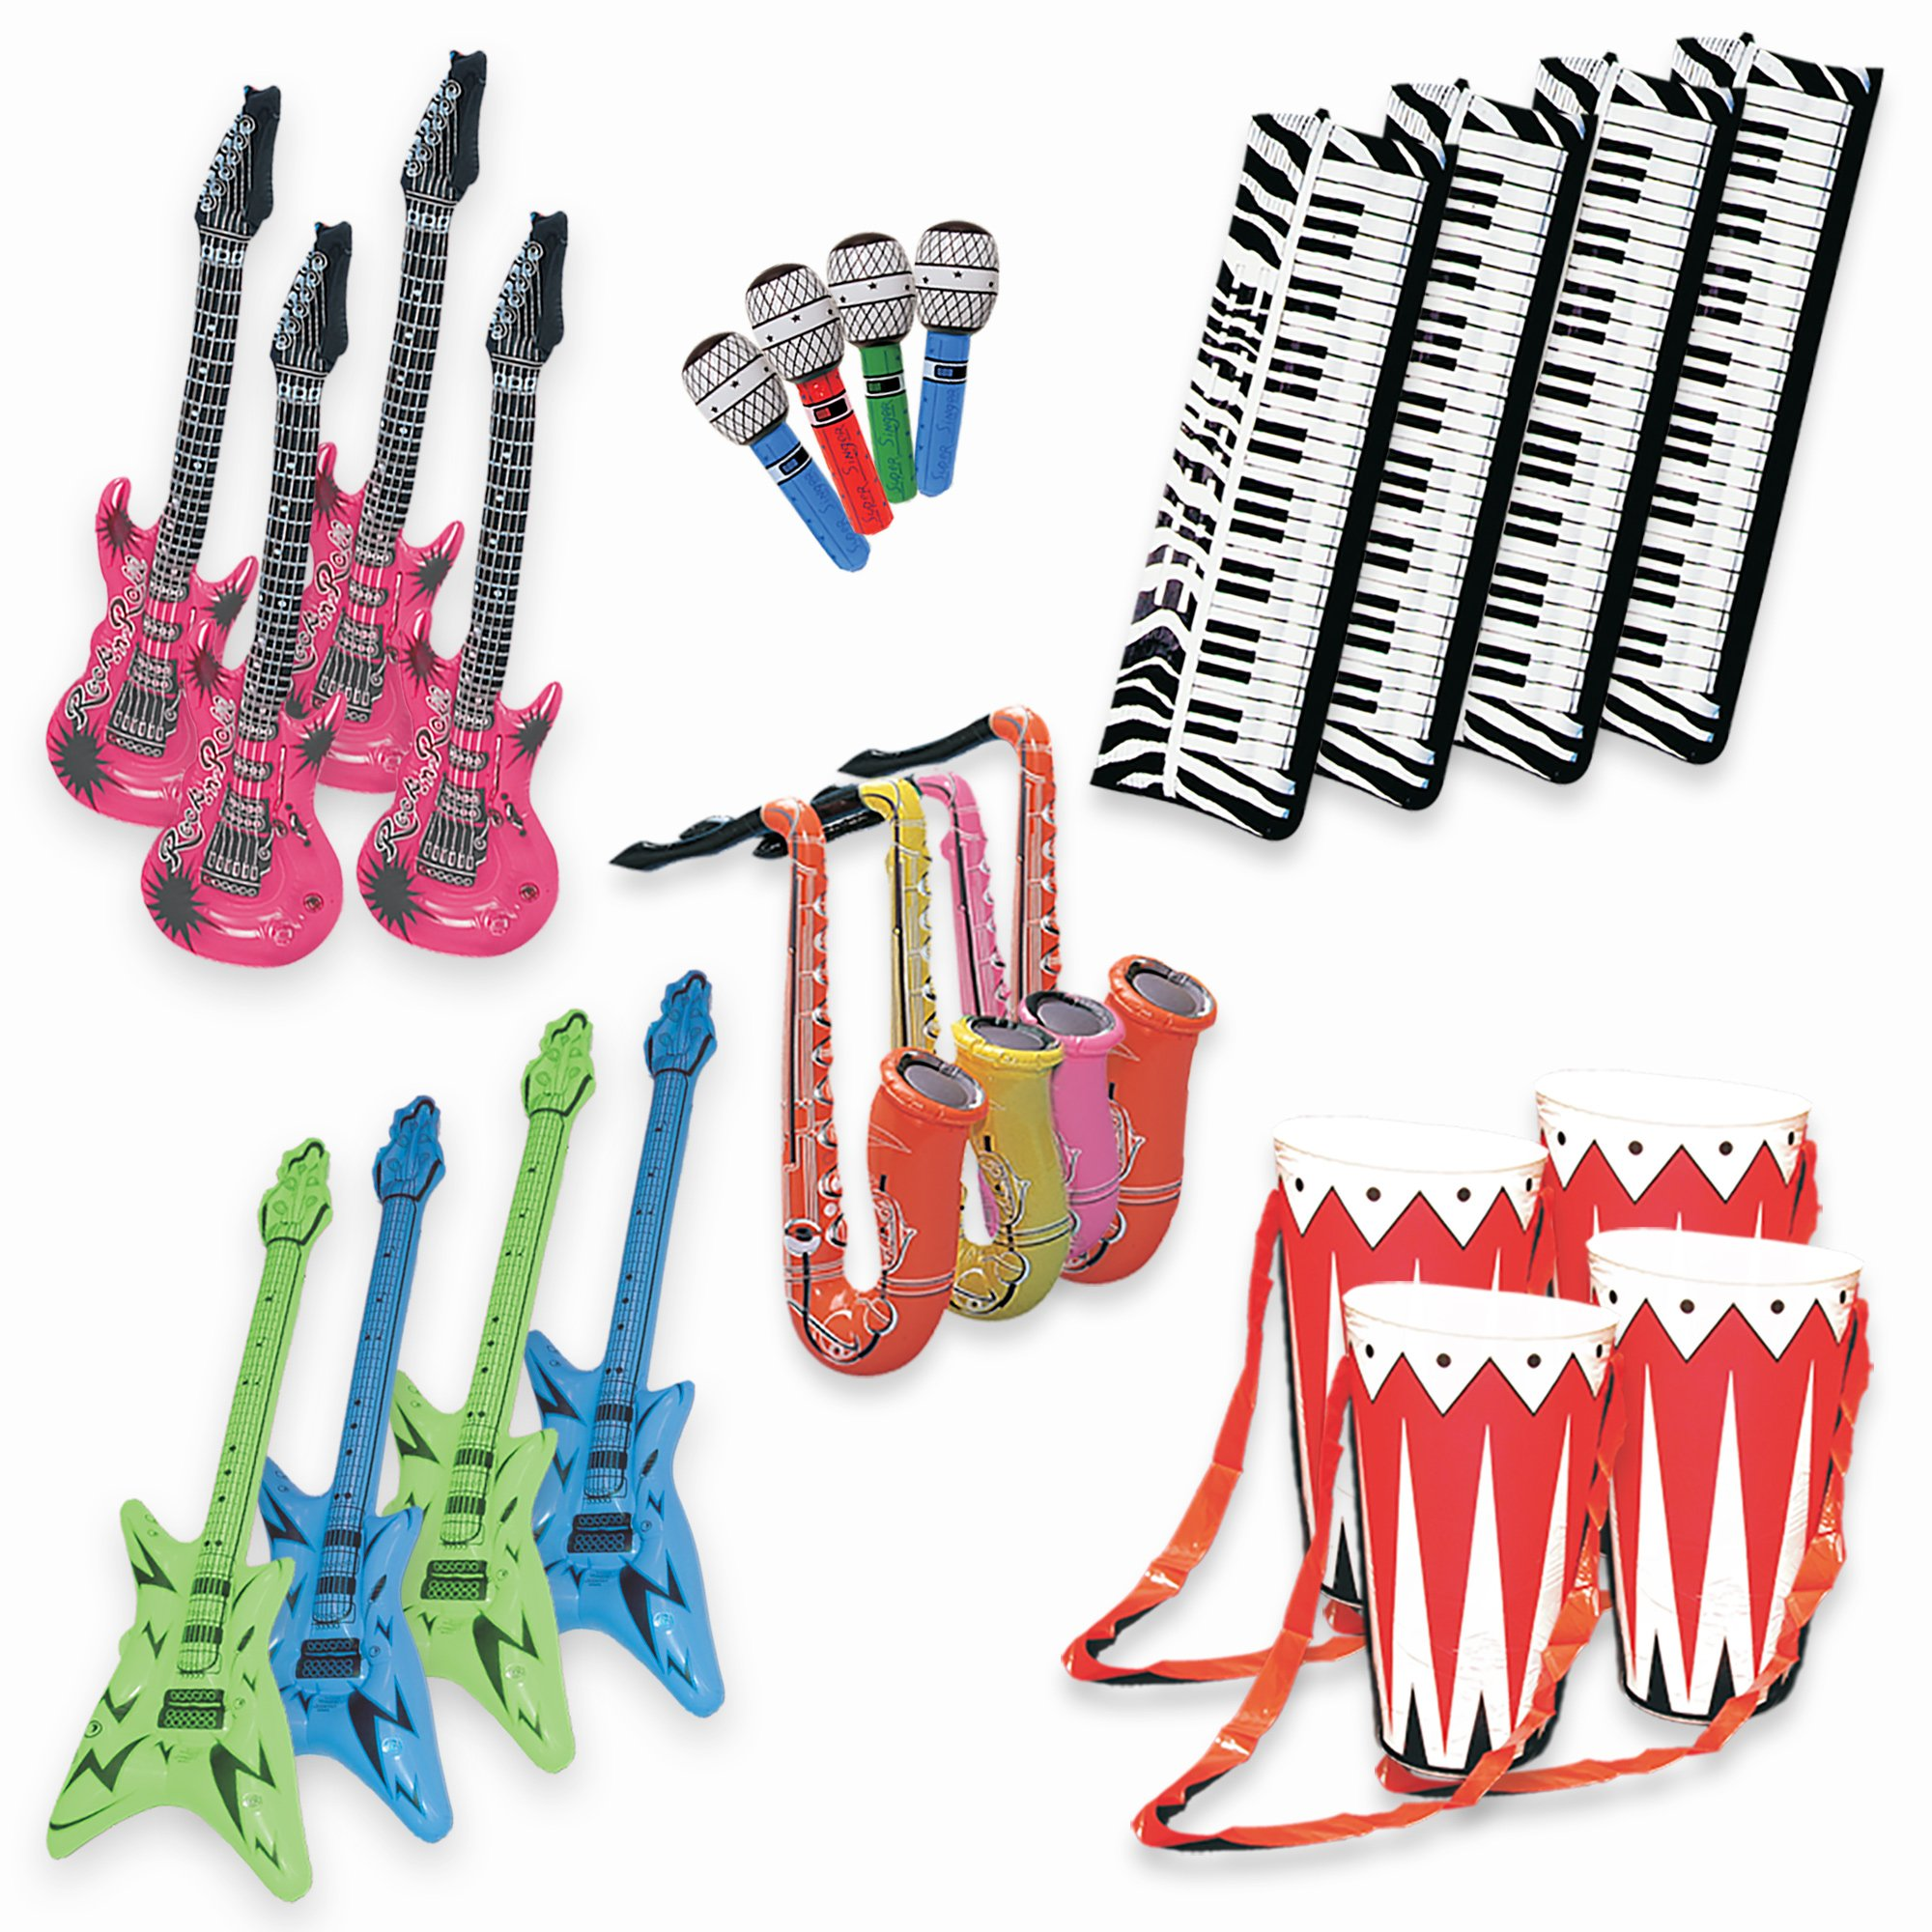 Band On The Run - Inflatable Musical Rock Band Instruments - 24 Piece Kit by Windy City Novelties